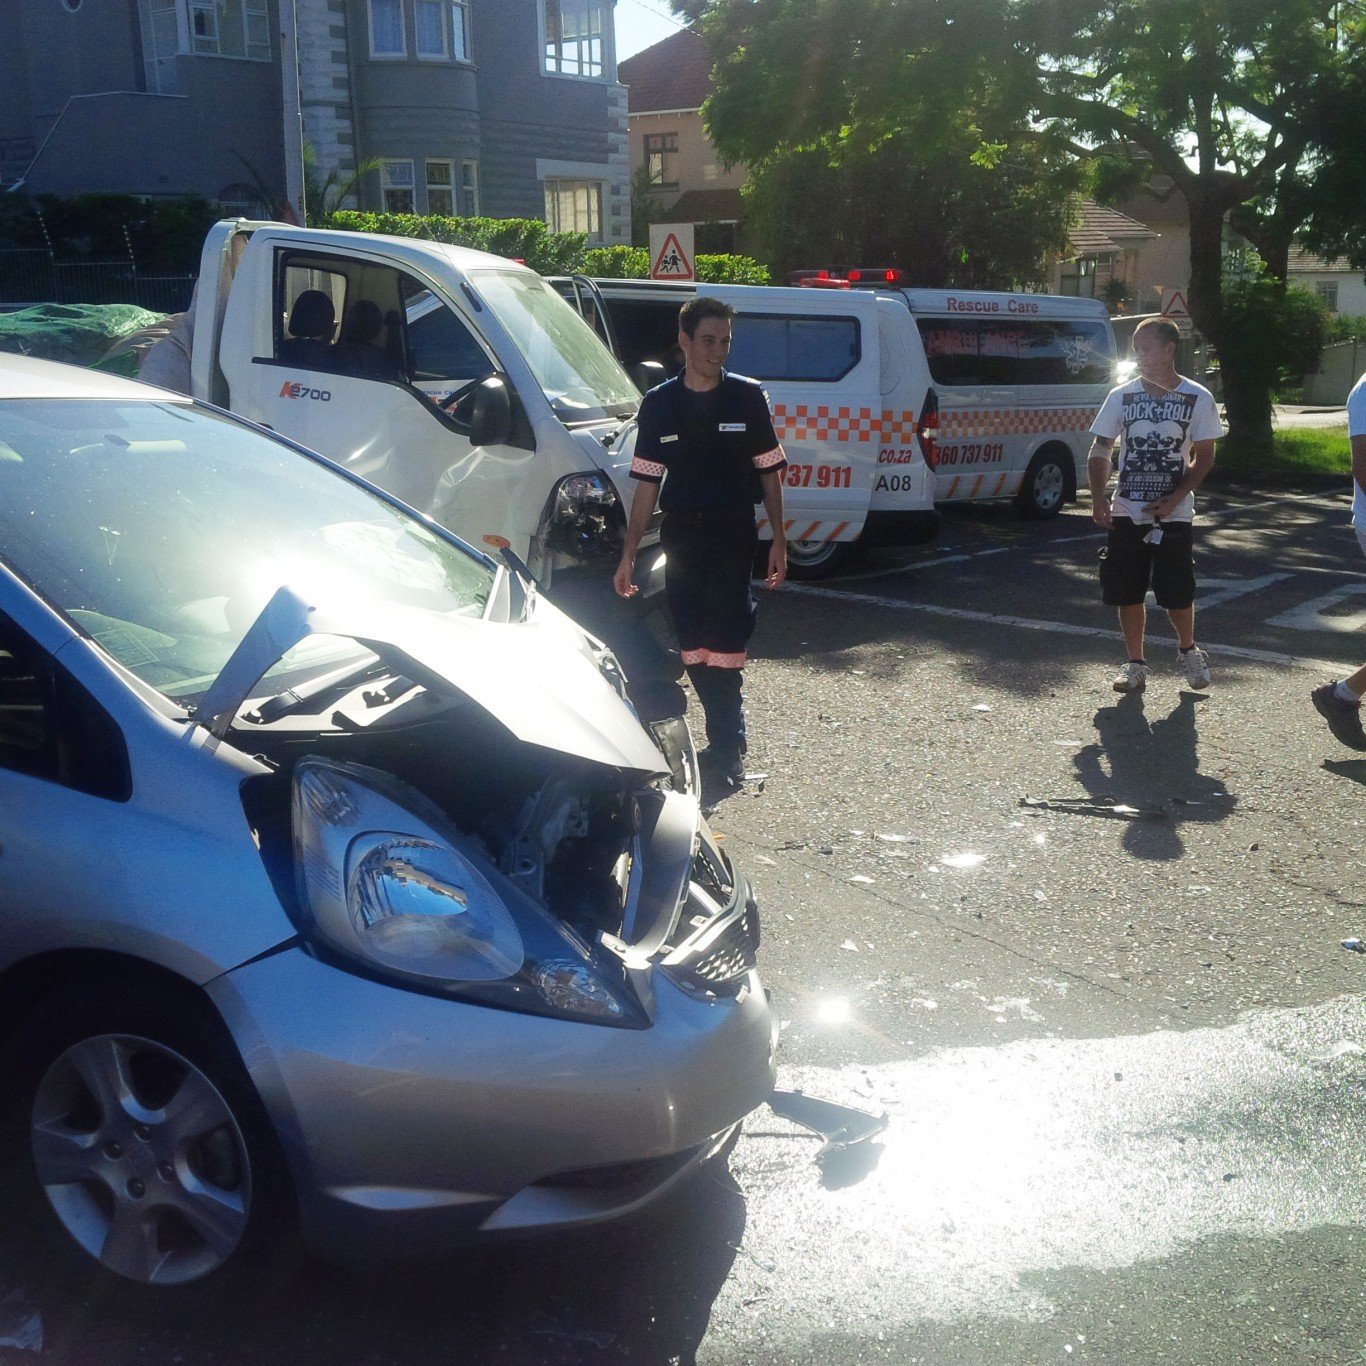 3 injured in early morning collision in Durban